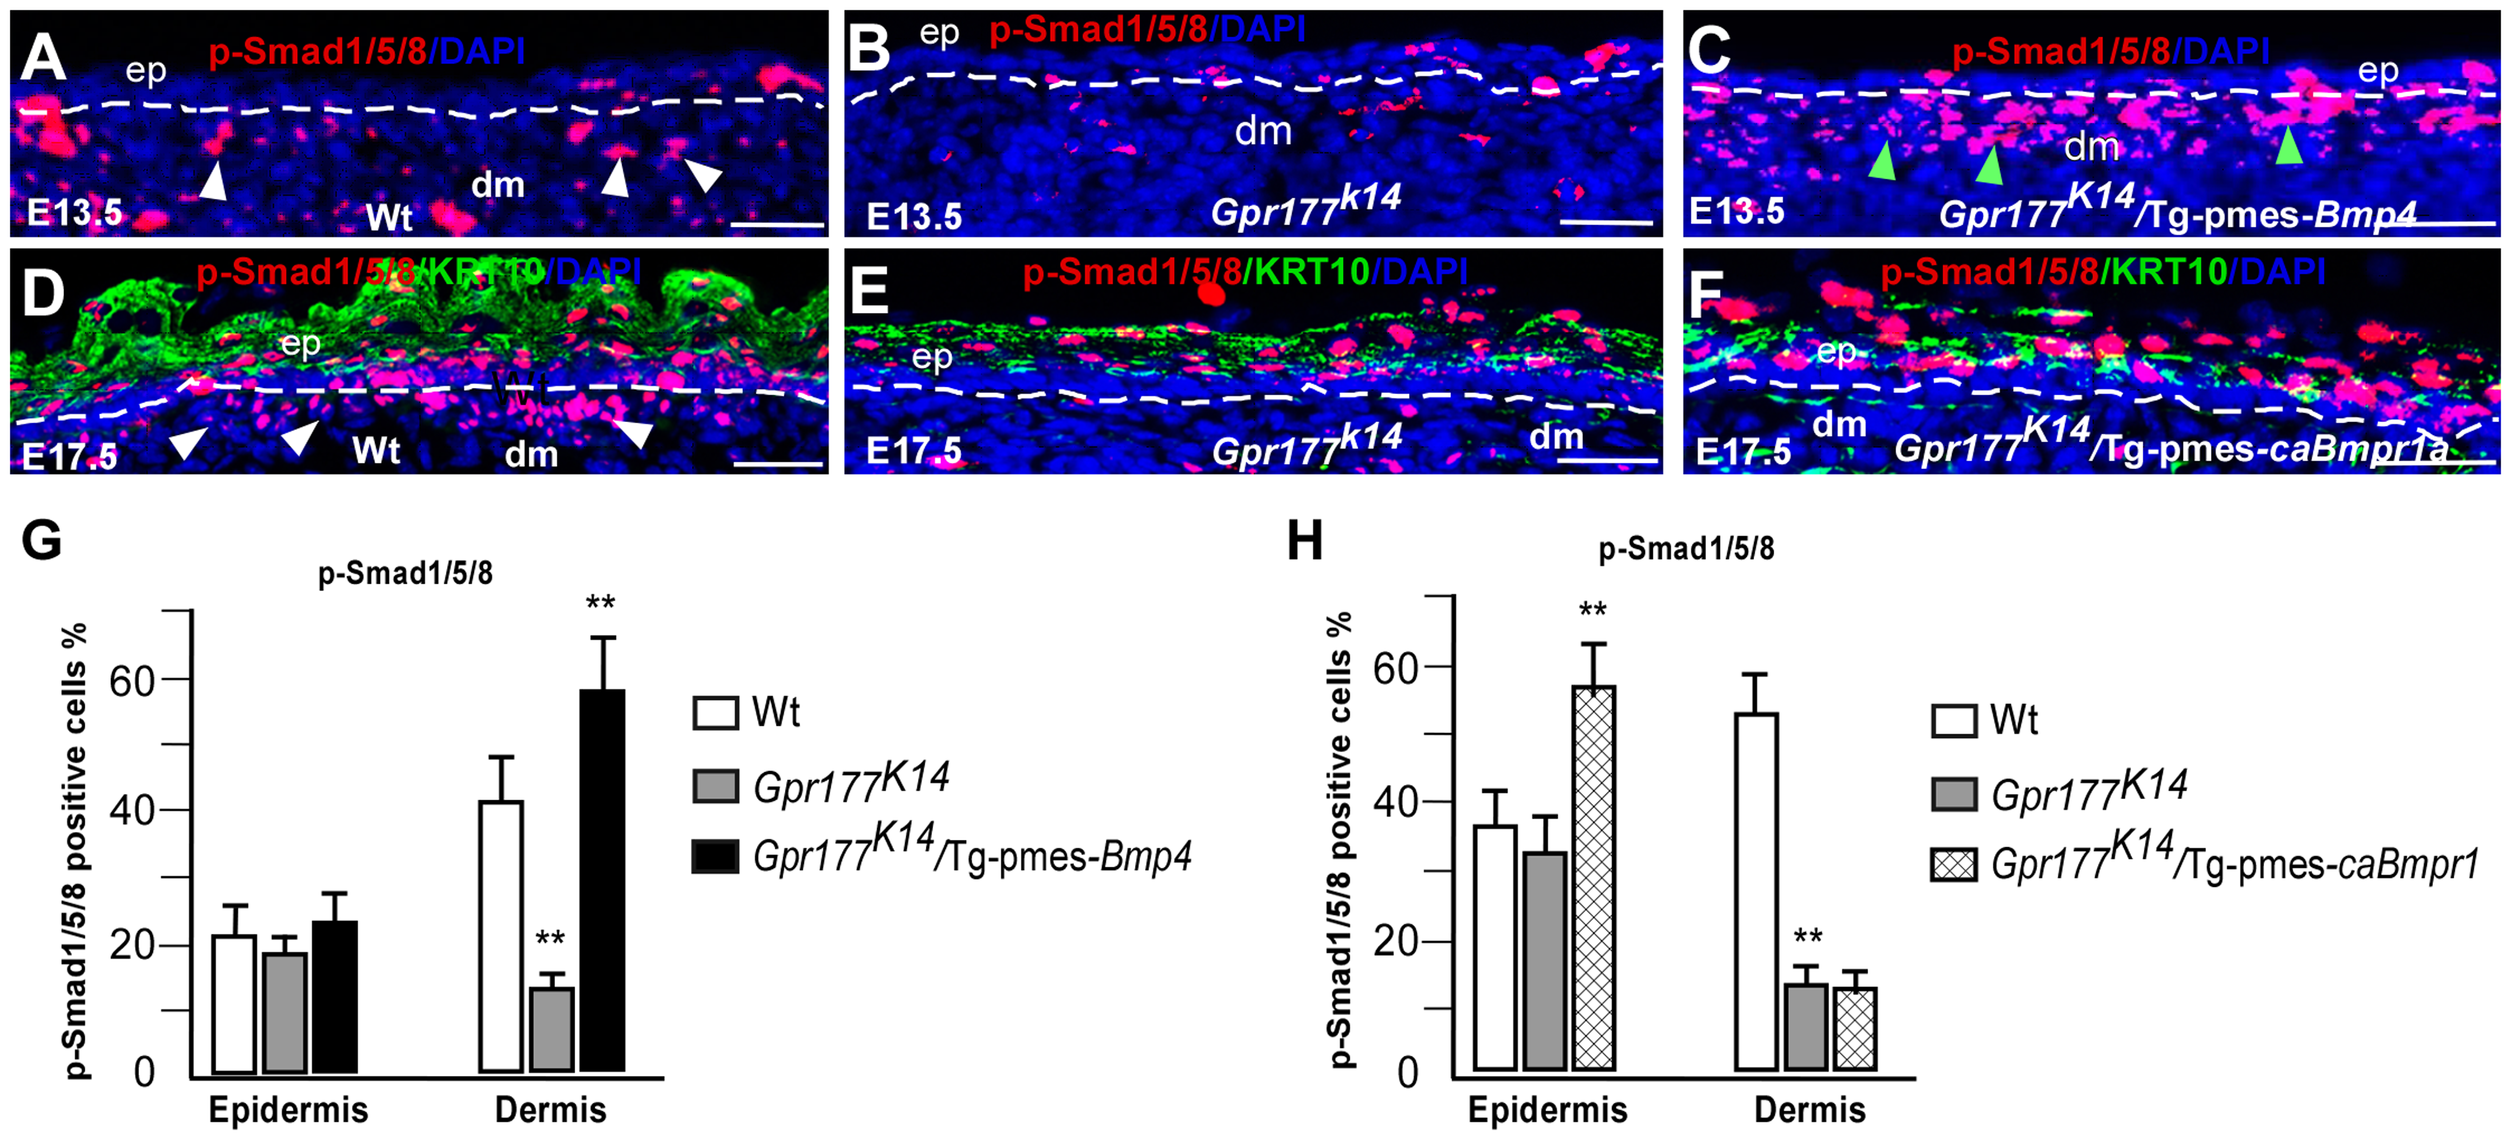 Transgenic pmes-<i>Bmp4</i> reactivates Smad1/5/8 signaling in the dermal mesenchyme in <i>Gpr177<sup>K14</sup></i>/Tg-pmes-<i>Bmp4</i>.